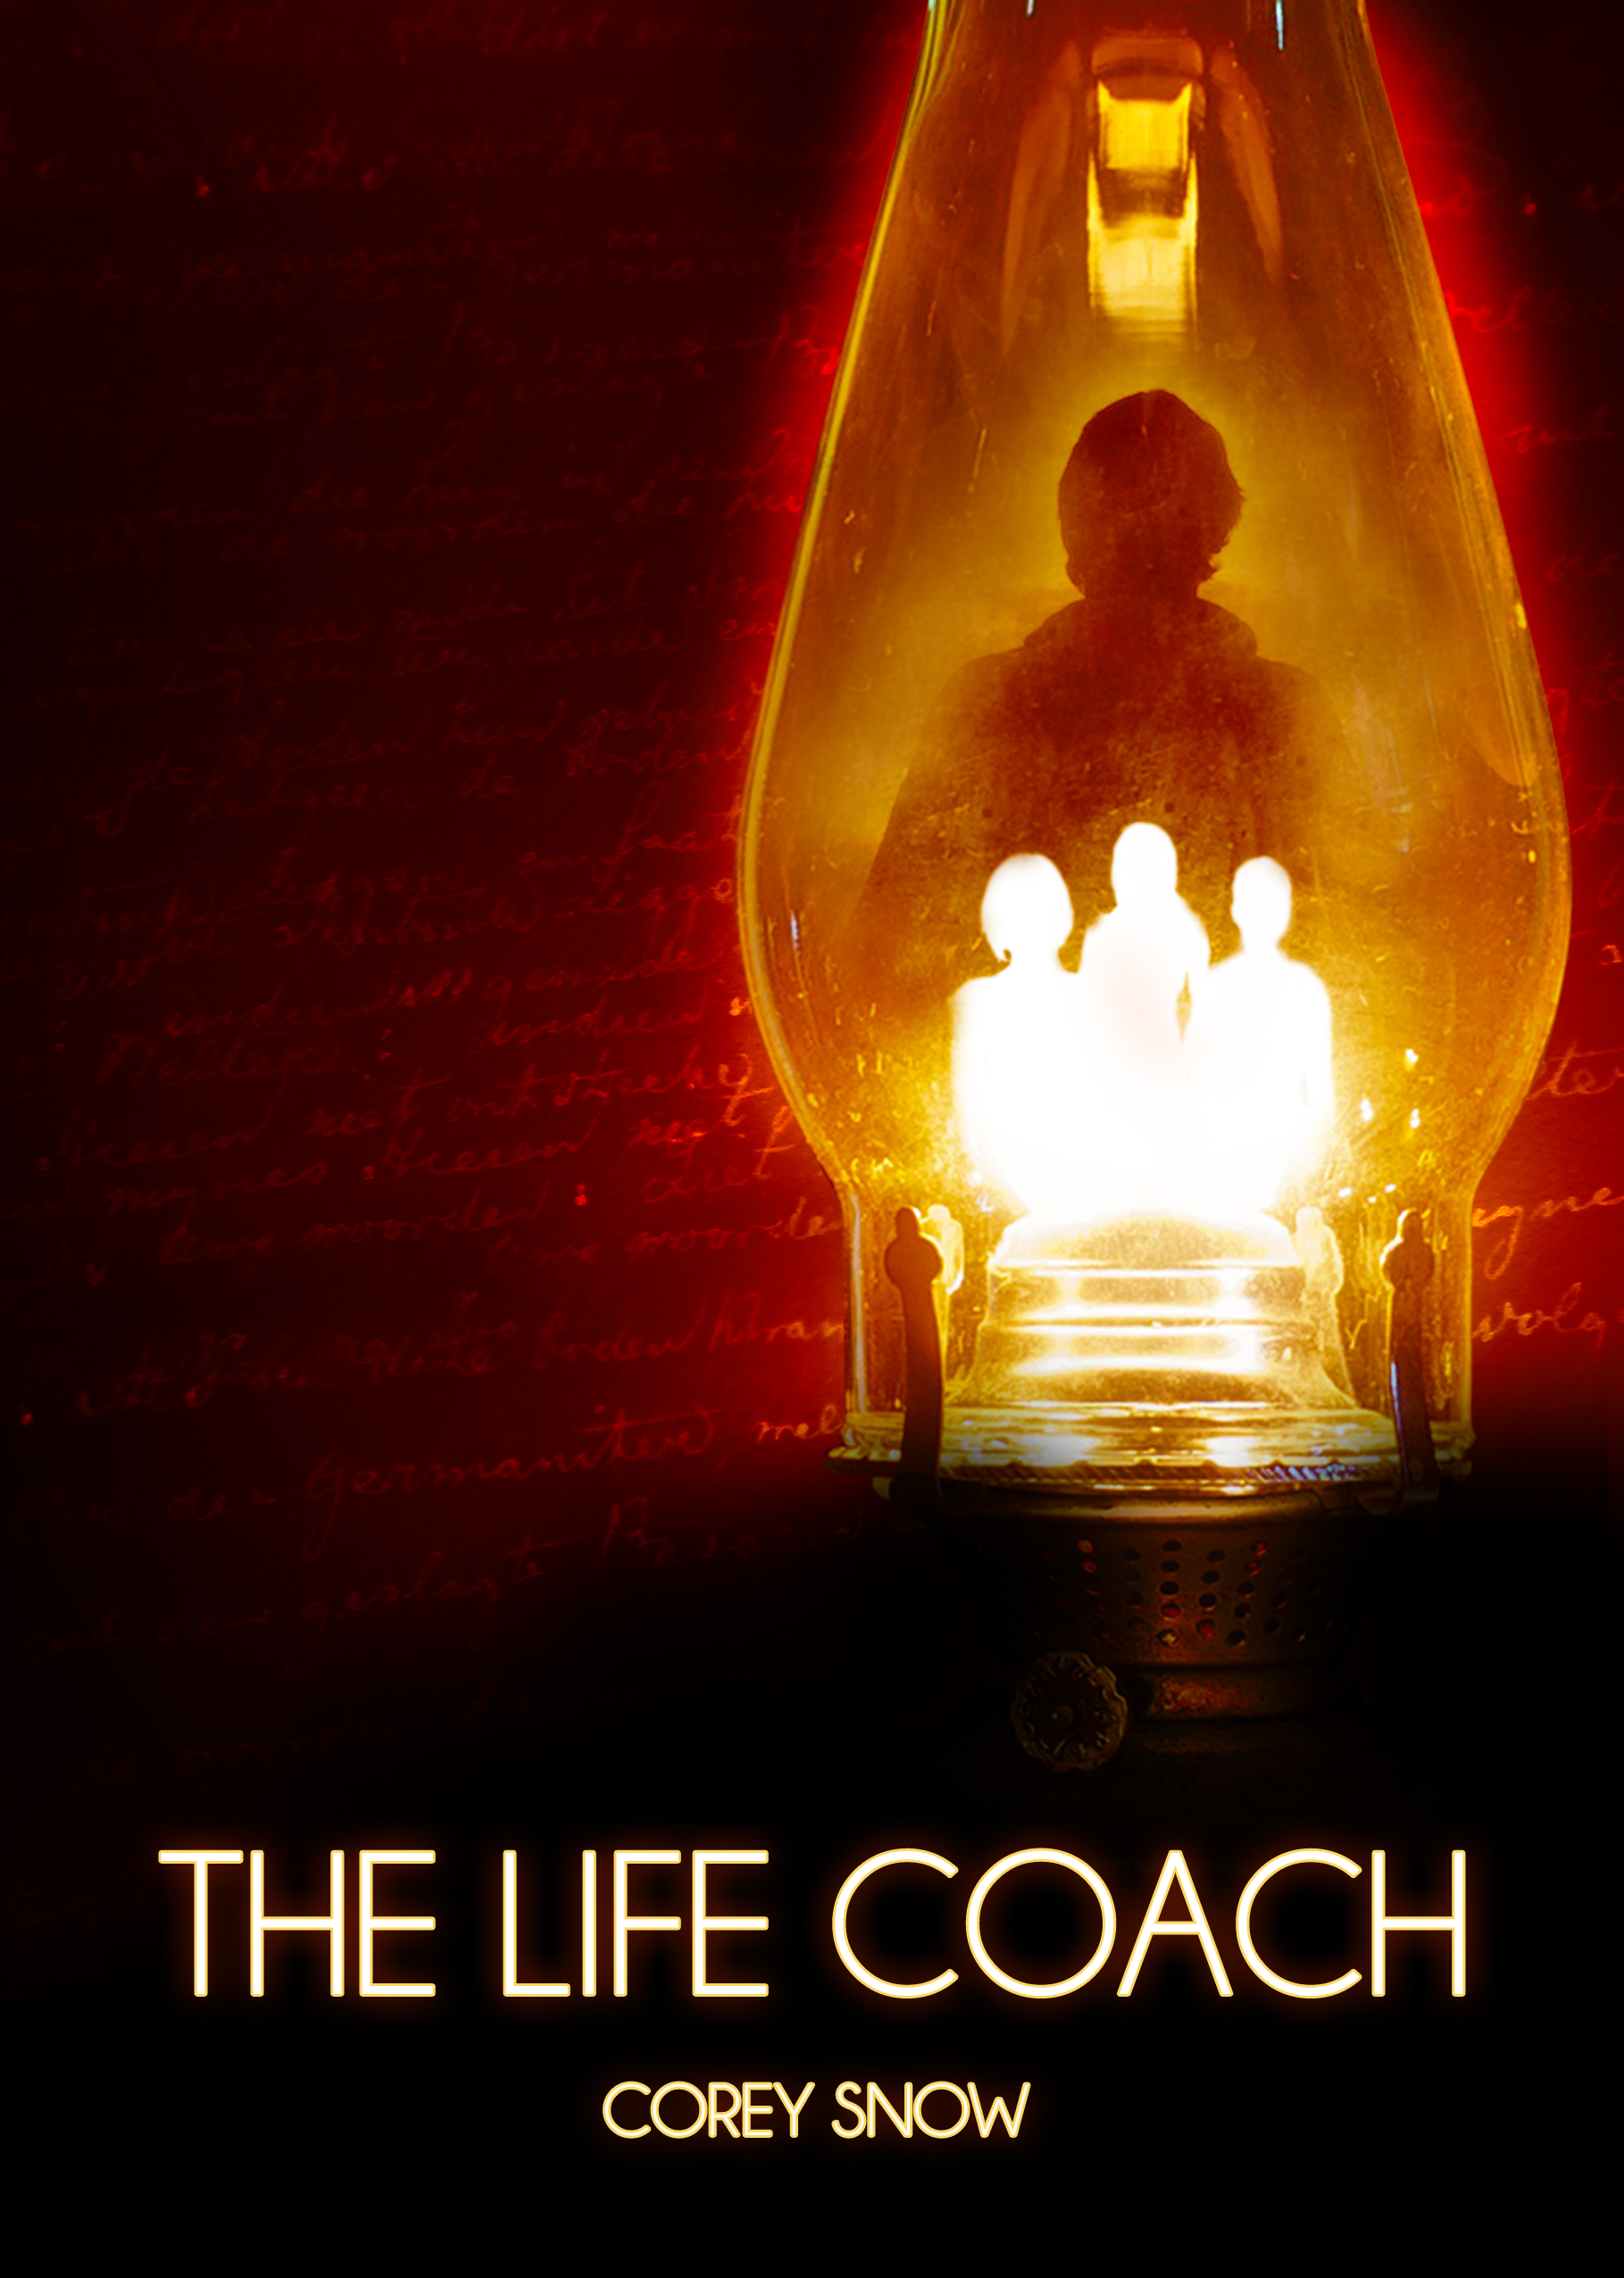 The Life Coach, an Ebook by Corey Snow